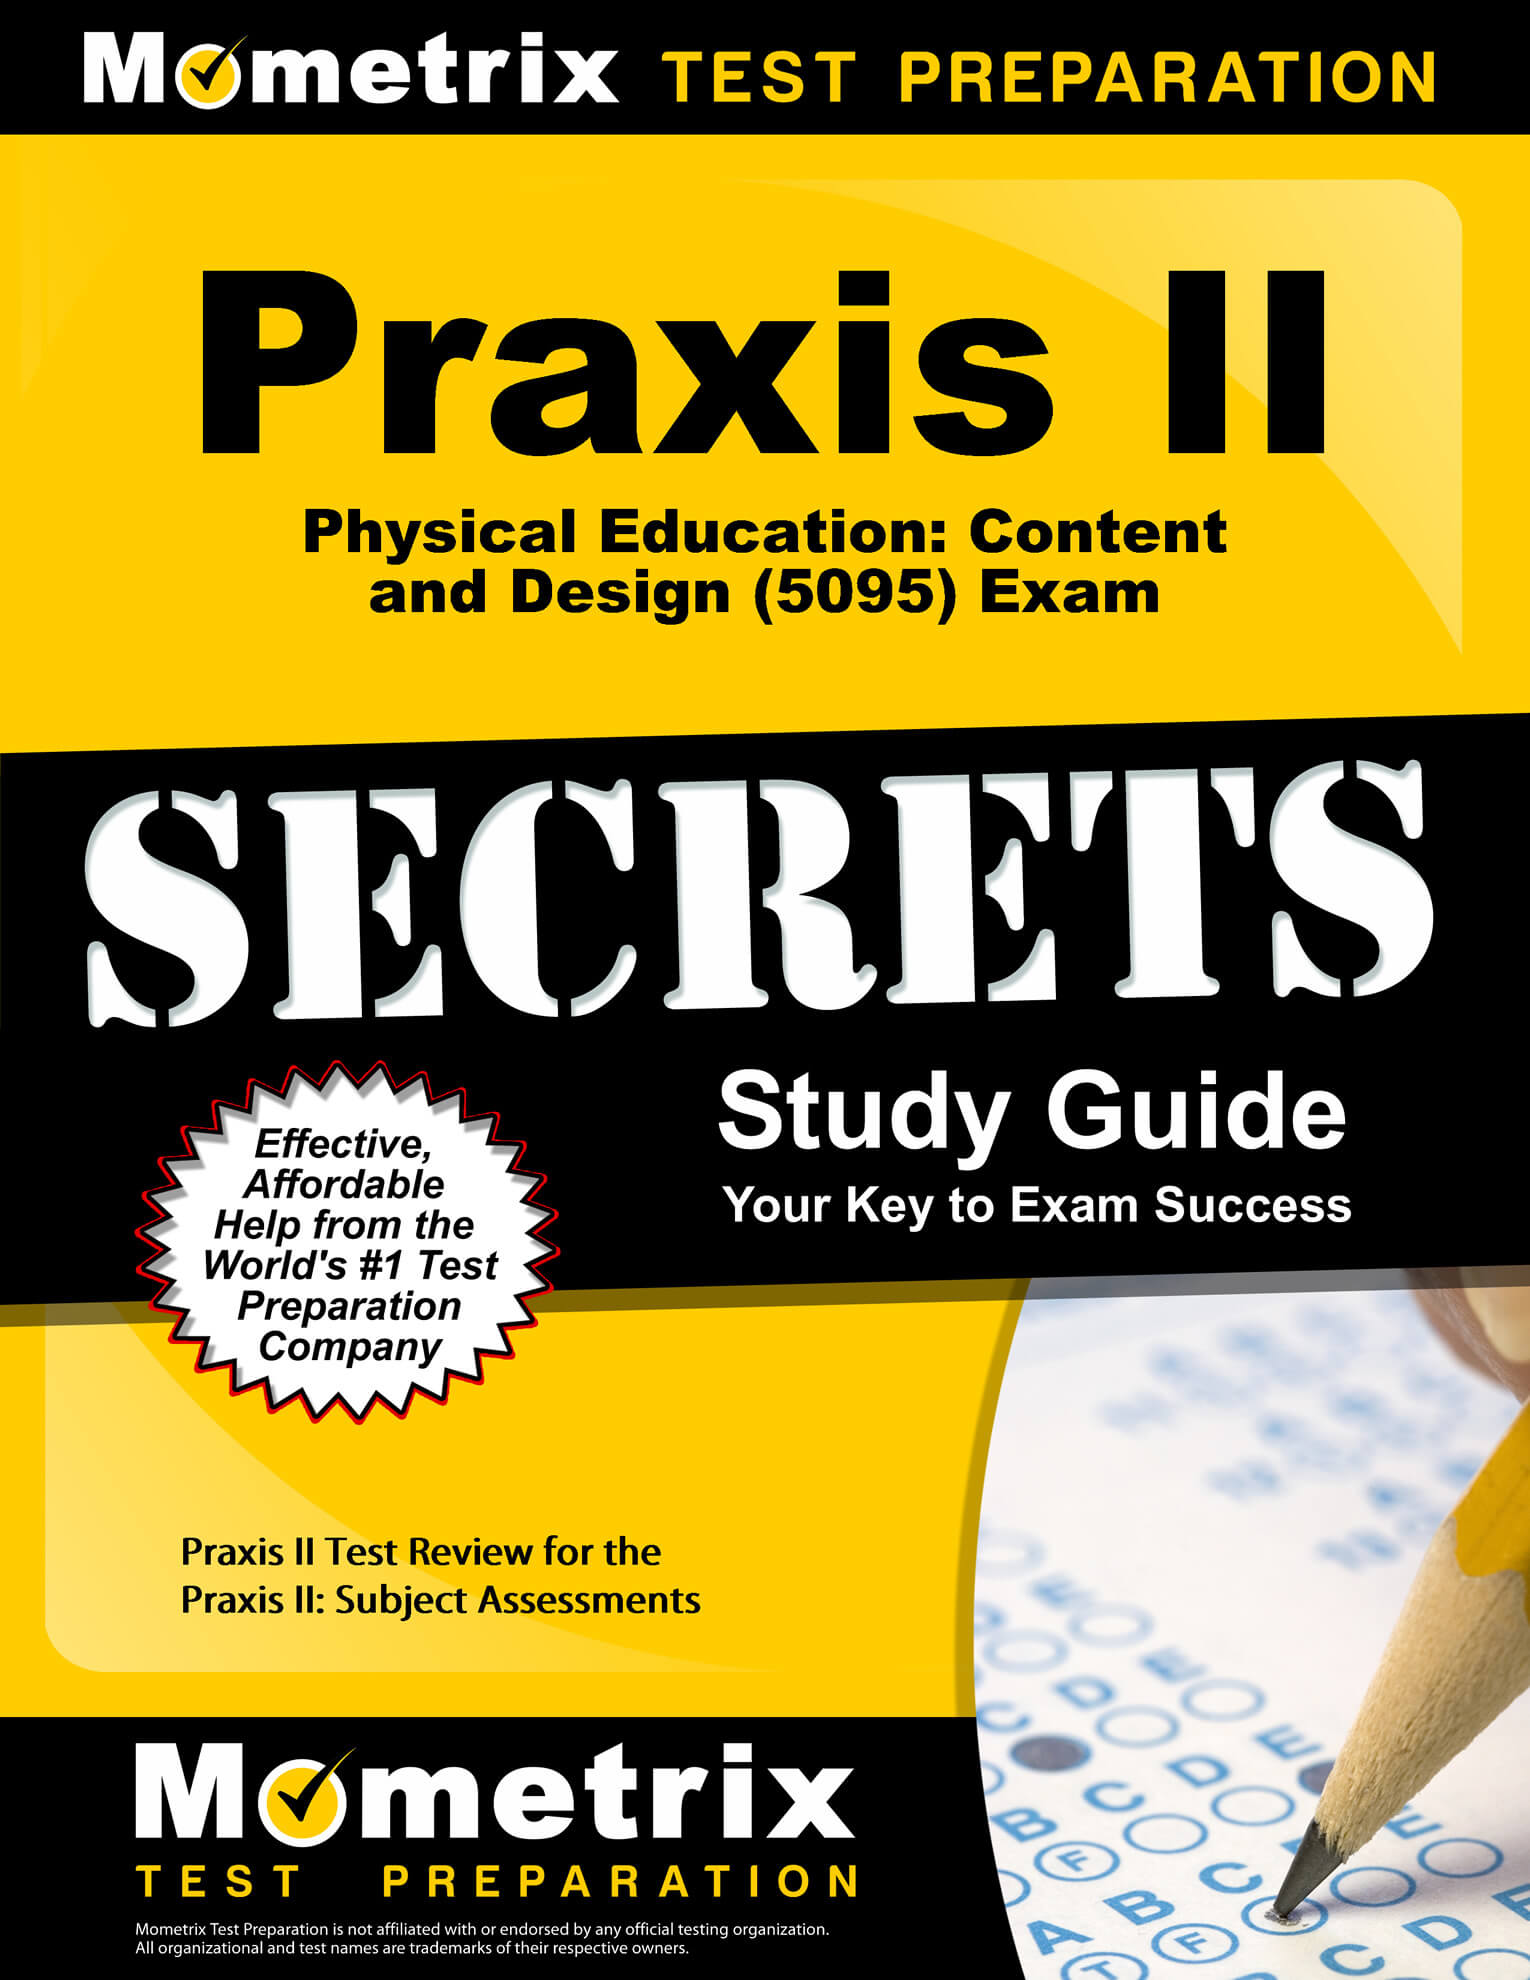 Praxis II Physical Education: Content and Design Study Guide